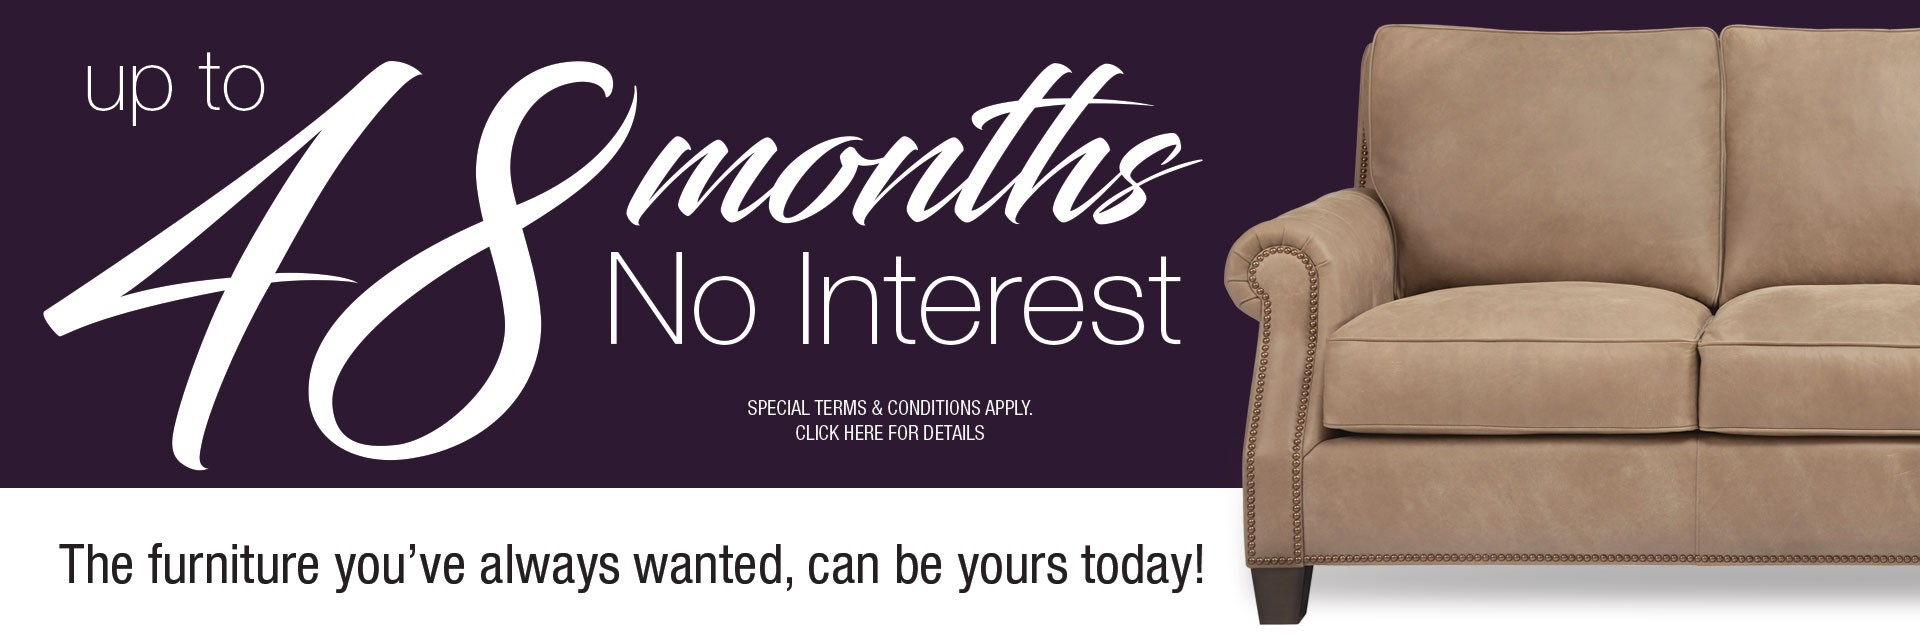 Up To 48 Months No Interest